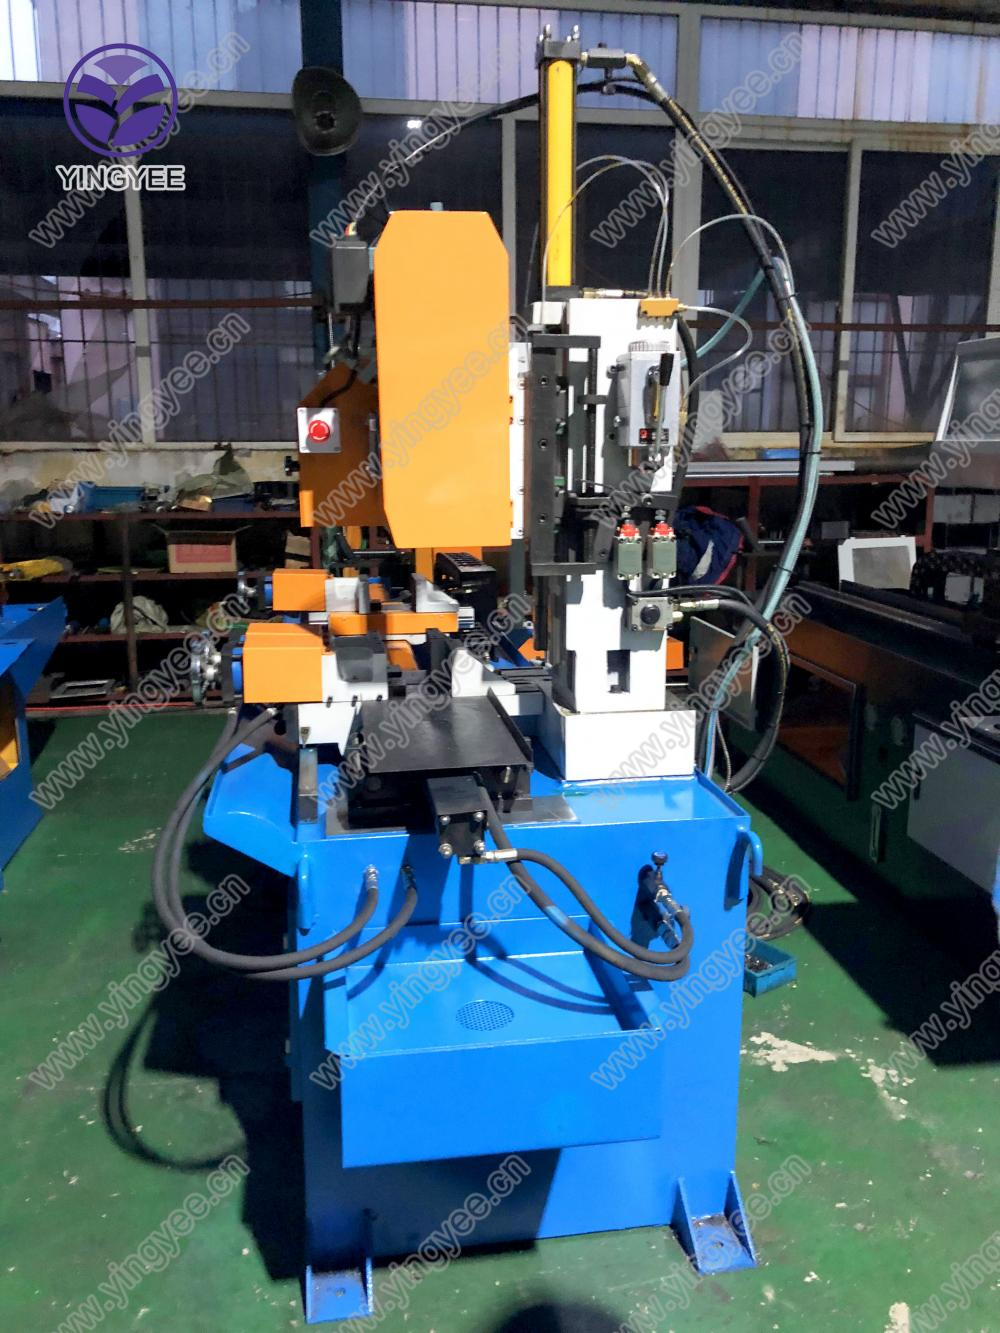 Auto Metal Pipe Cutting Machine From Yingyee001